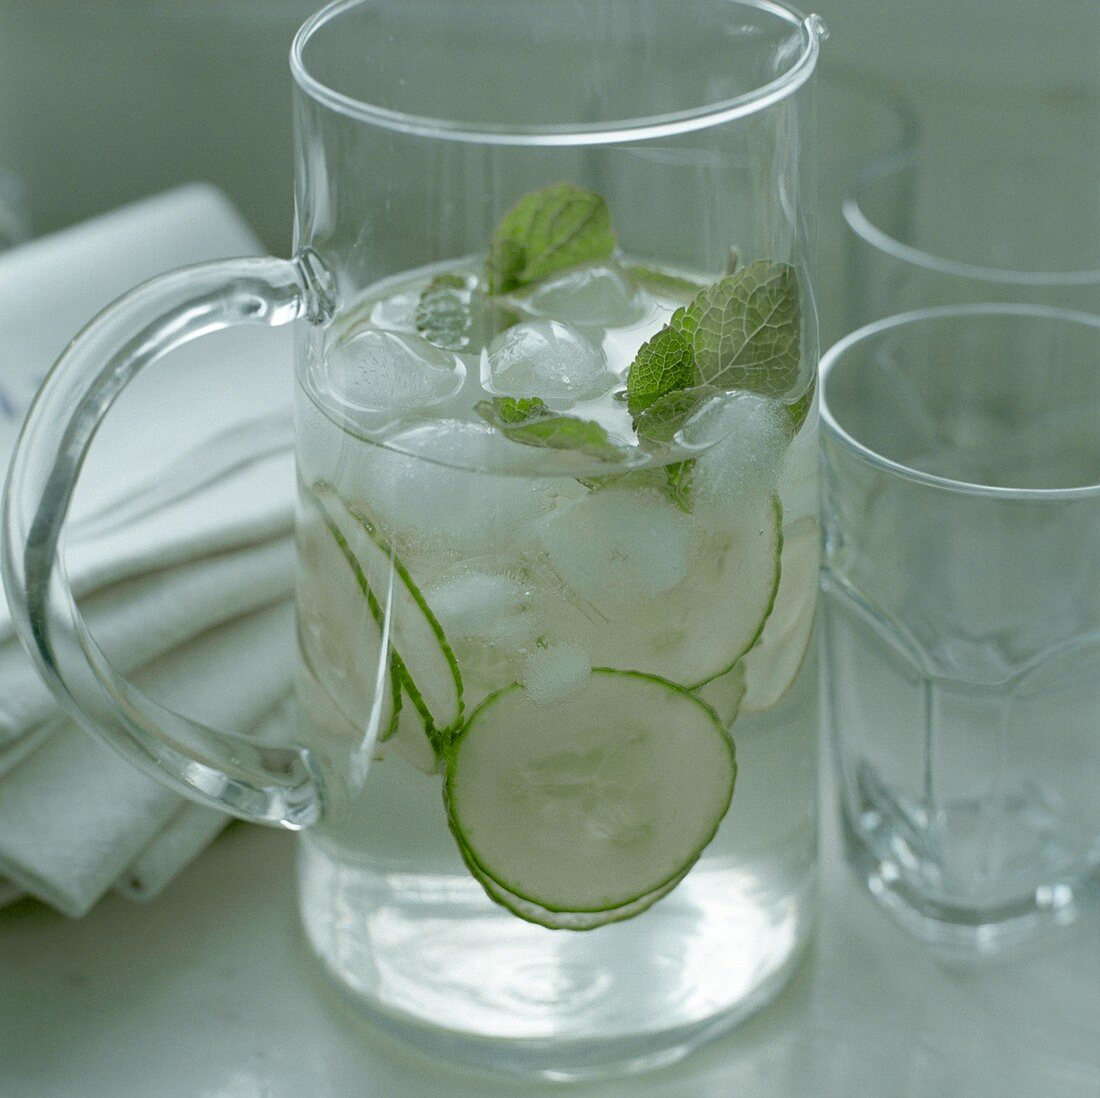 Refreshing drink with cucumber slices